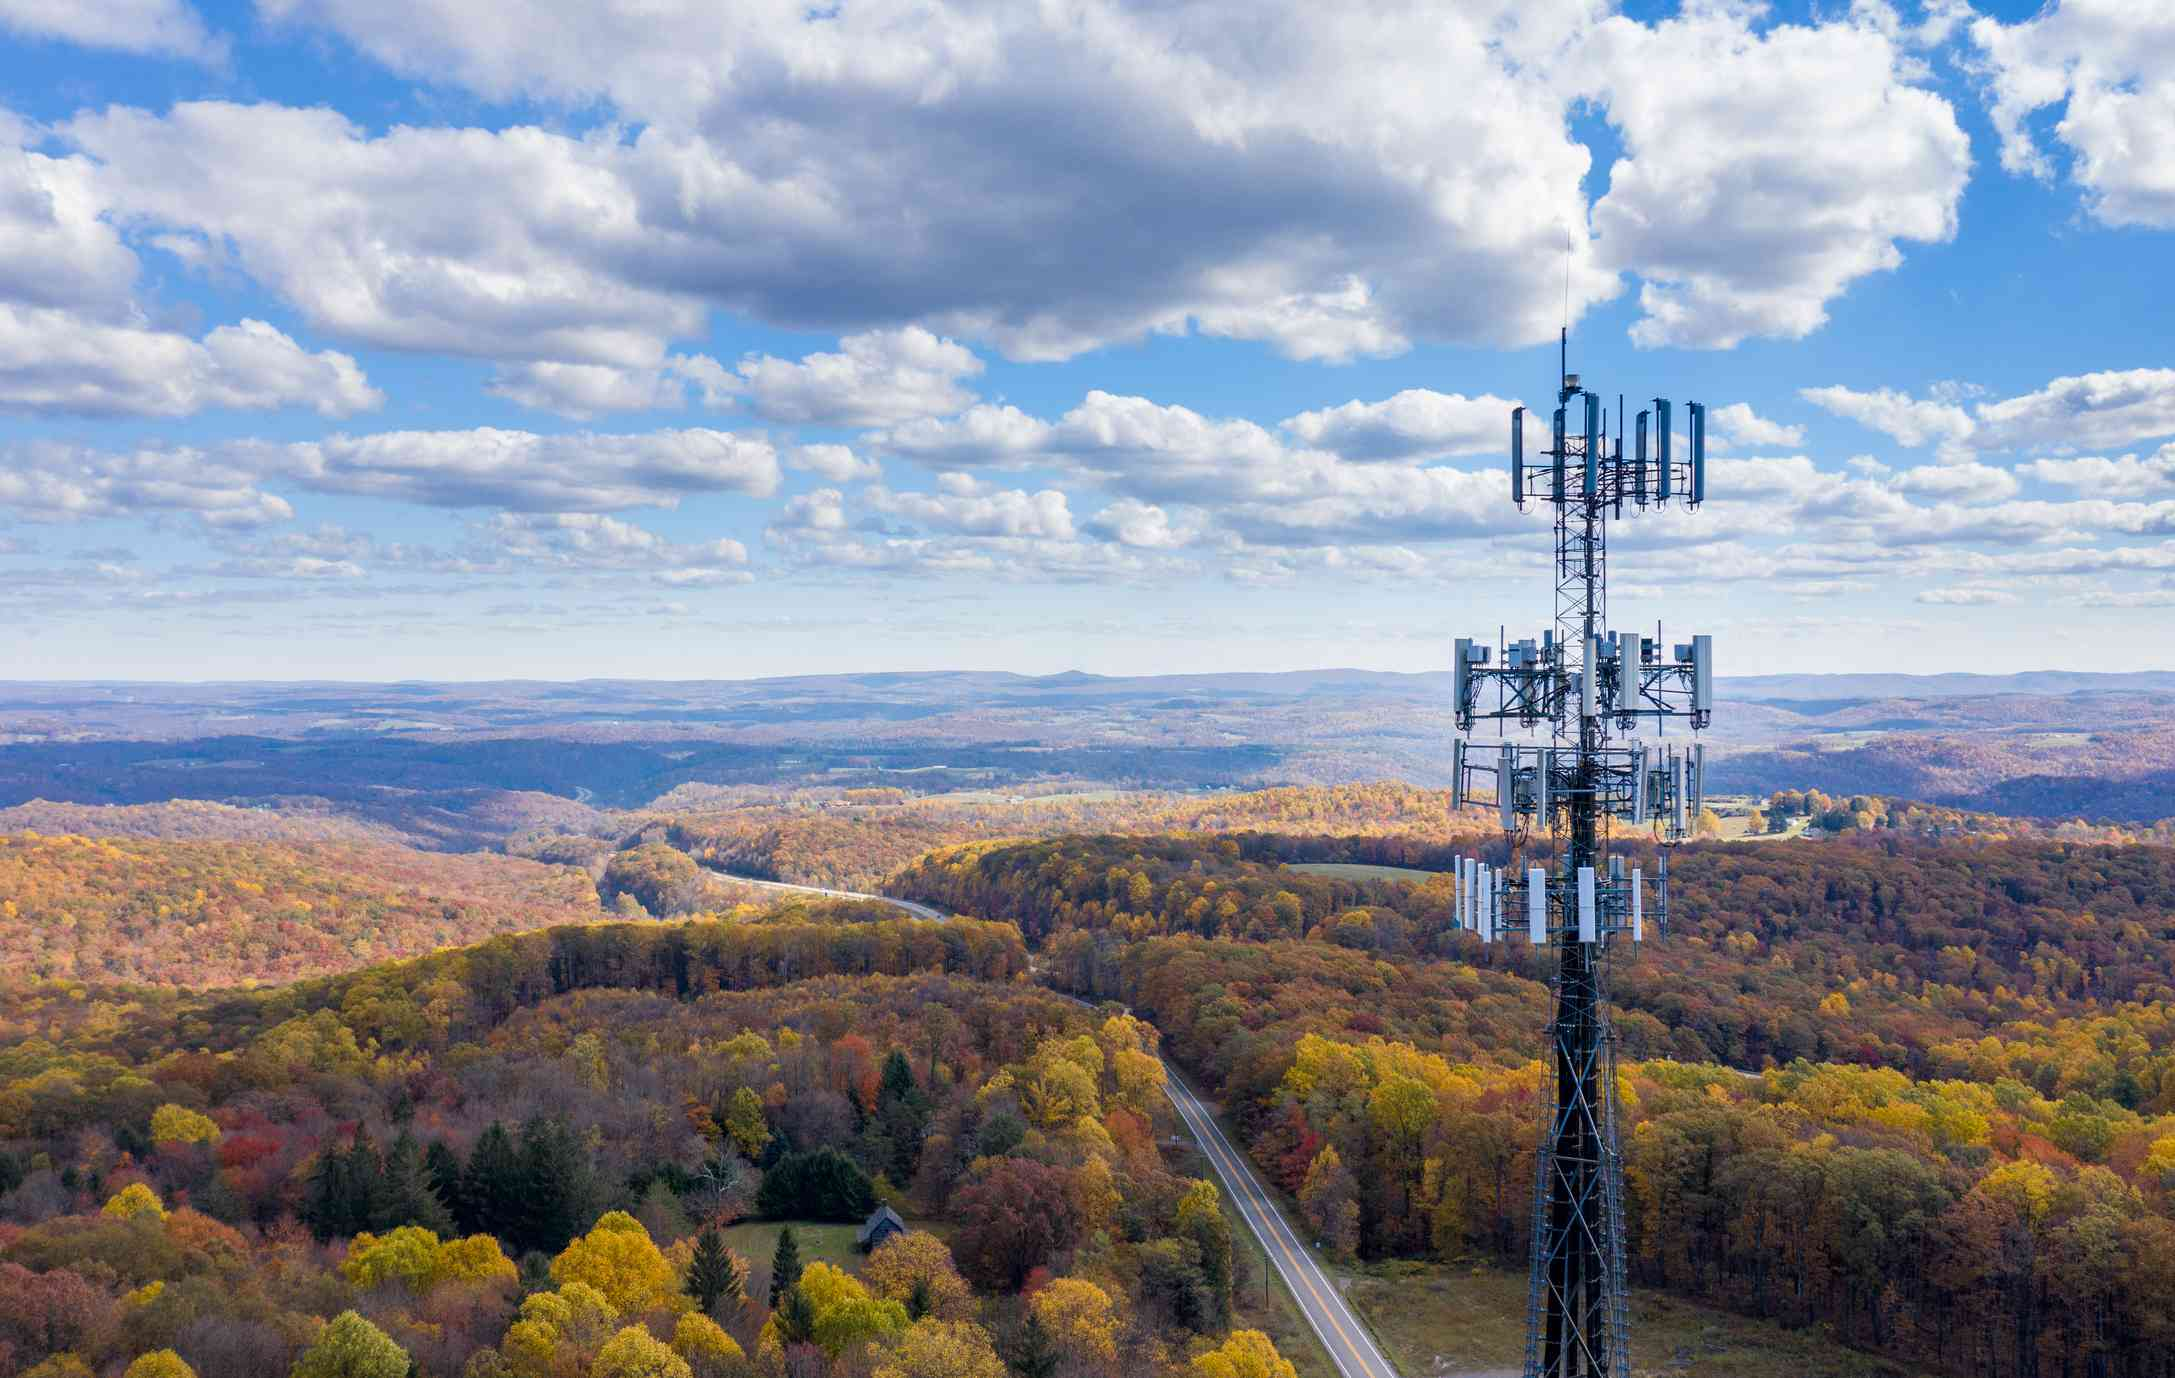 Cell phone tower in a rural areas.